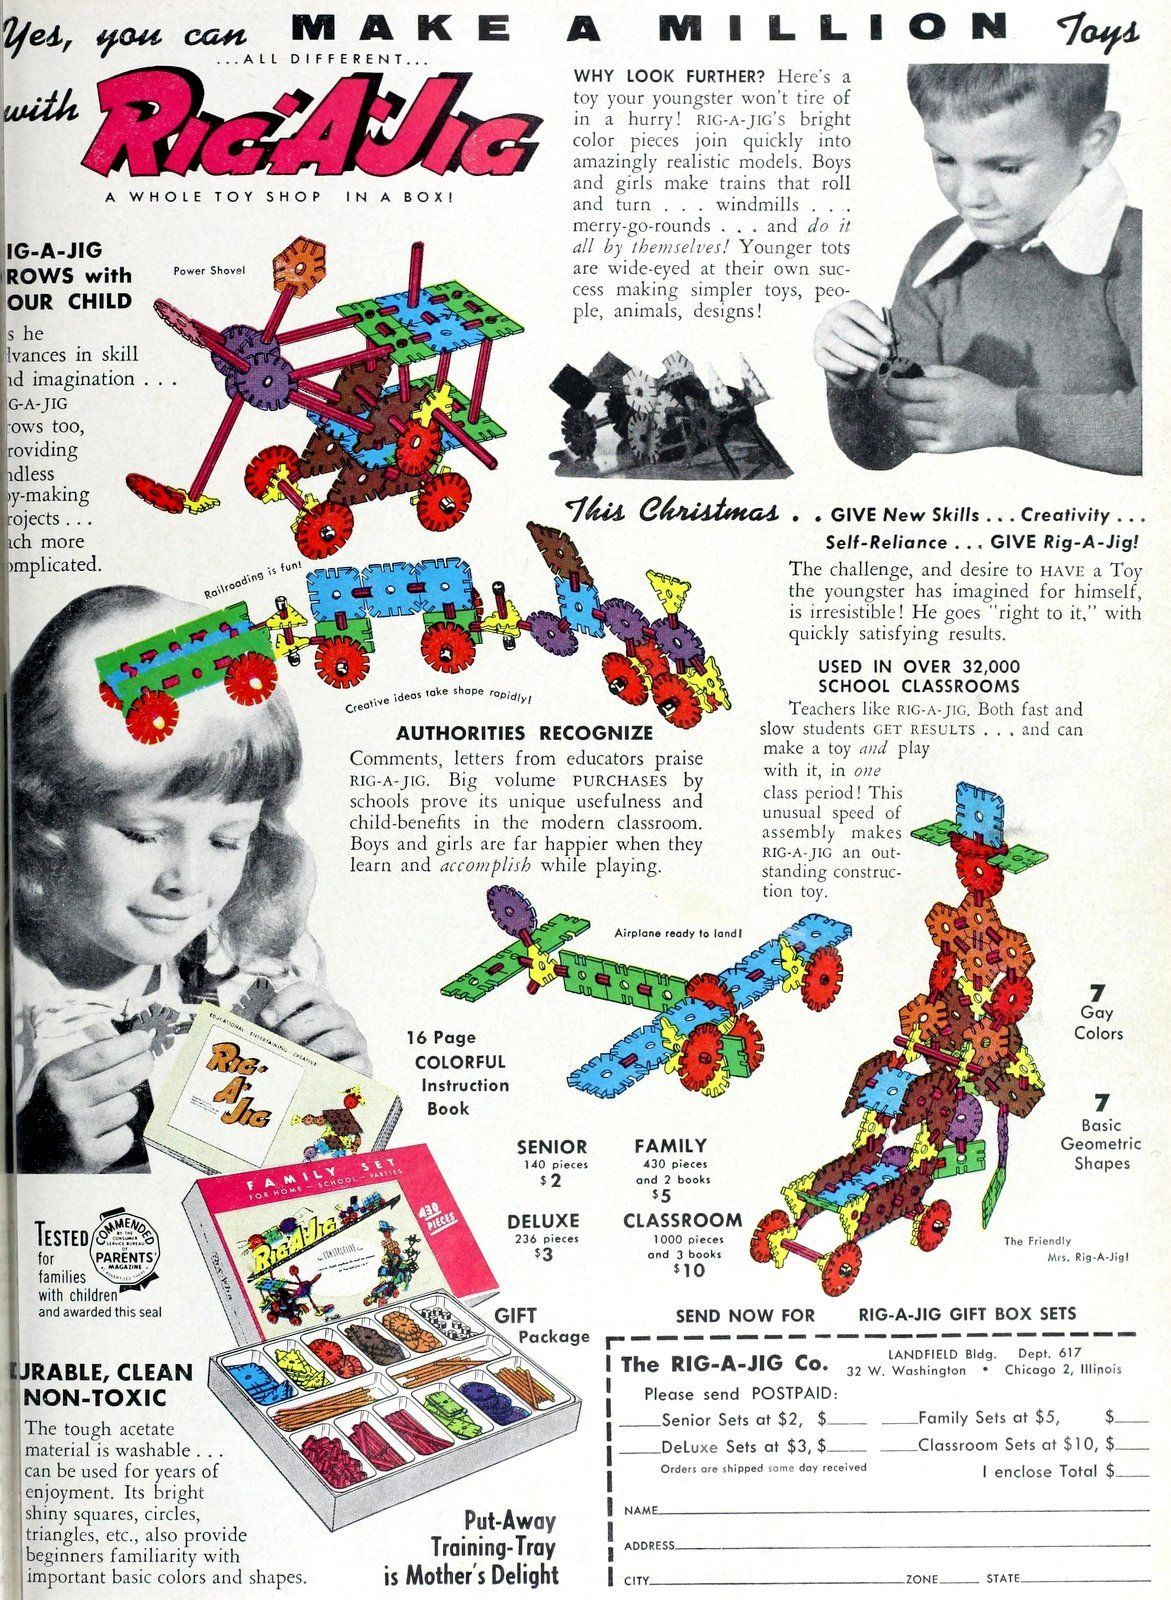 See old Rig-a-Jig construction toys from the 1950s